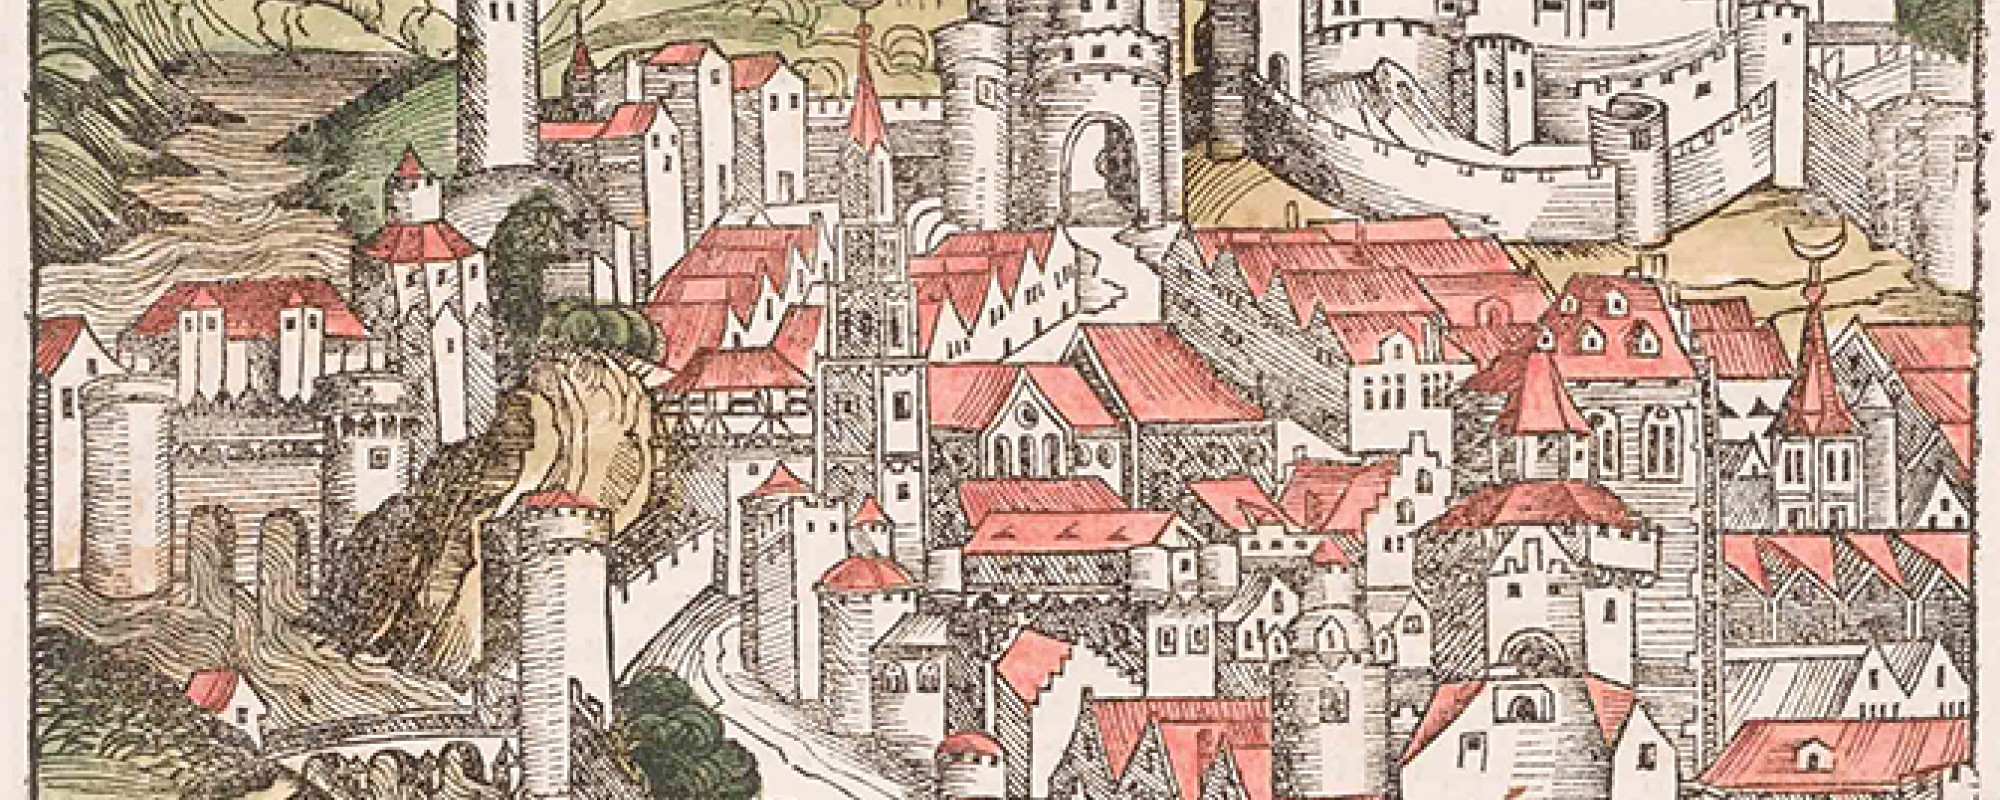 Michael Wolgemut (German, 1434–1519) or Wilhelm Pleydenwurff (German, ca. 1460–1494), The City of Ravenna (detail), from Die Schedelsche Weltchronik [The Nuremberg Chronicle] (Nuremberg: Anton Koberger, 1493), 1493. Hand-colored woodcut. Museum purchase, Achenbach Foundation for Graphic Arts Endowment Fund